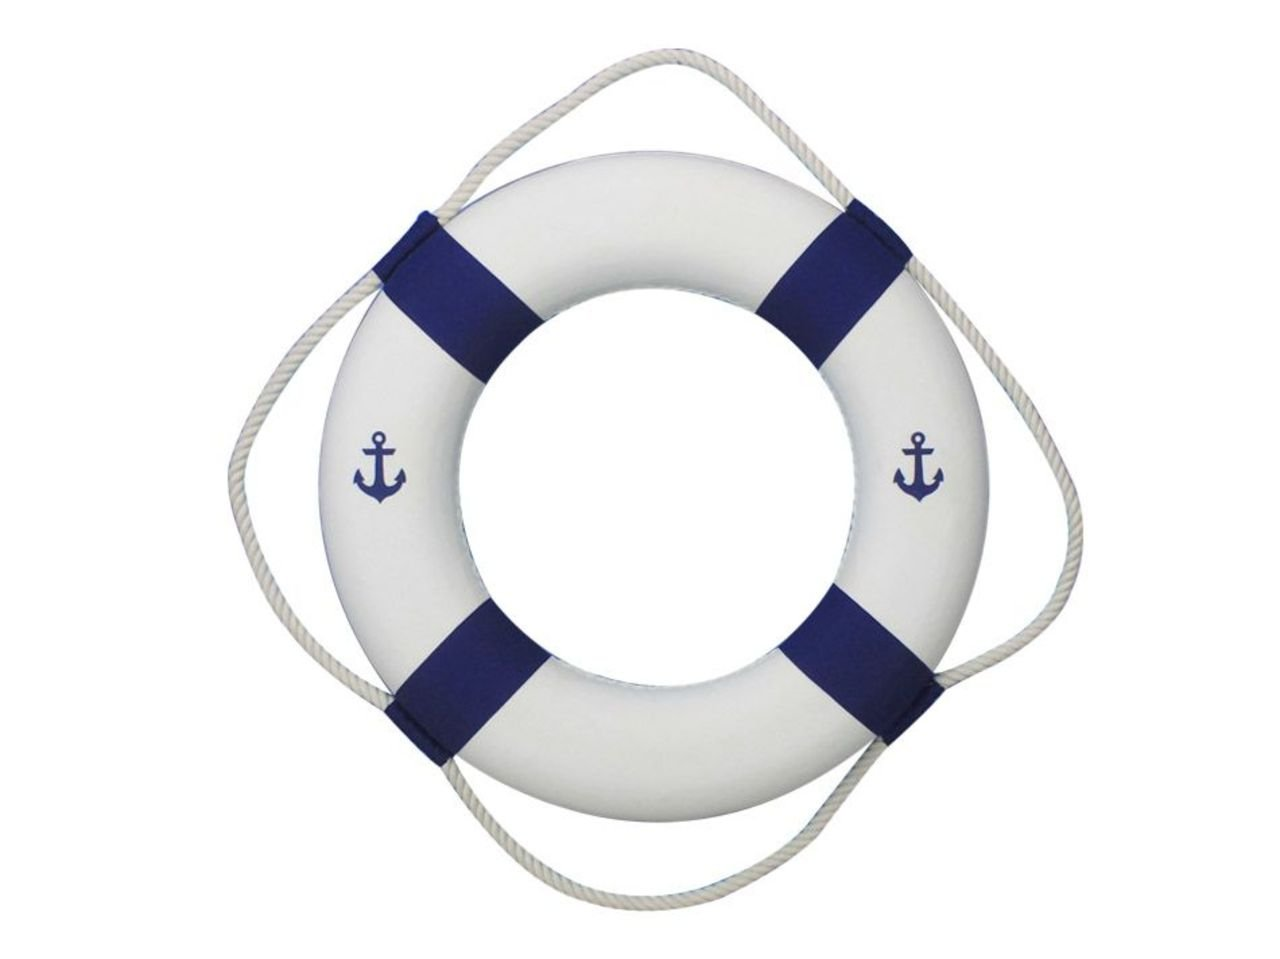 Hampton Nautical Classic White Decorative Anchor Life Ring with Bands Beach Decorating Ideas Accessories, 6